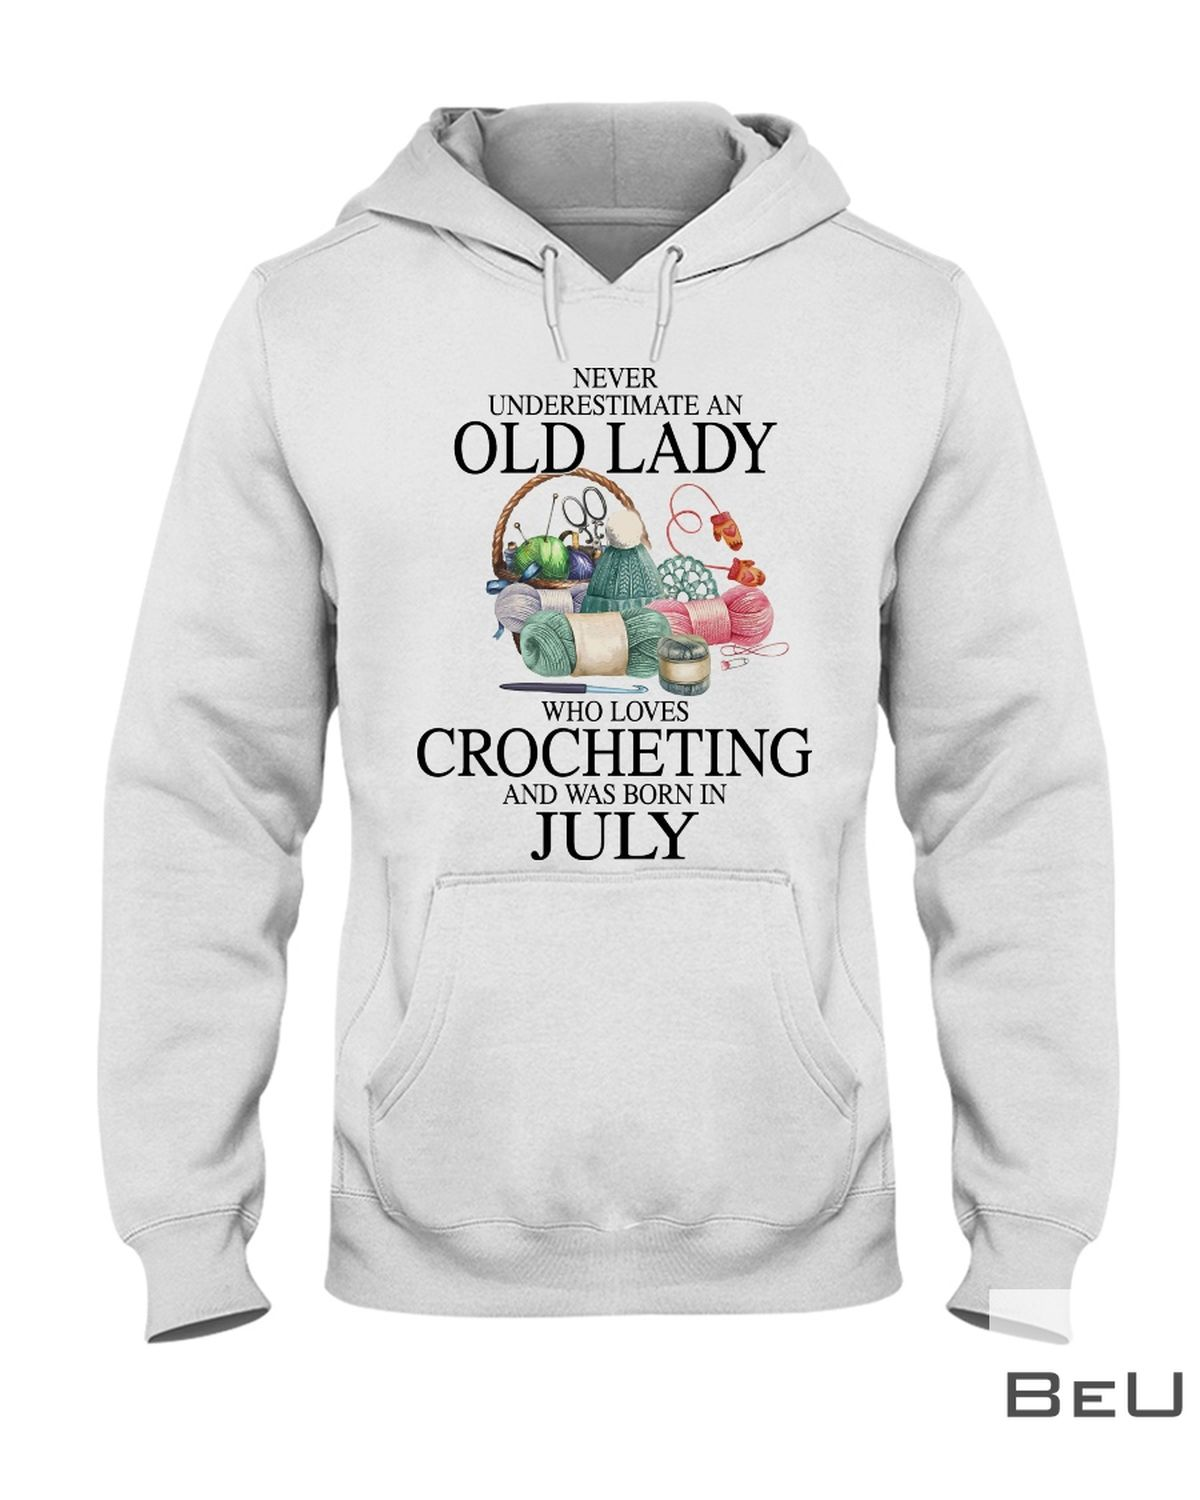 Never underestimate an old lady who loves Crocheting and was born in July shirtz